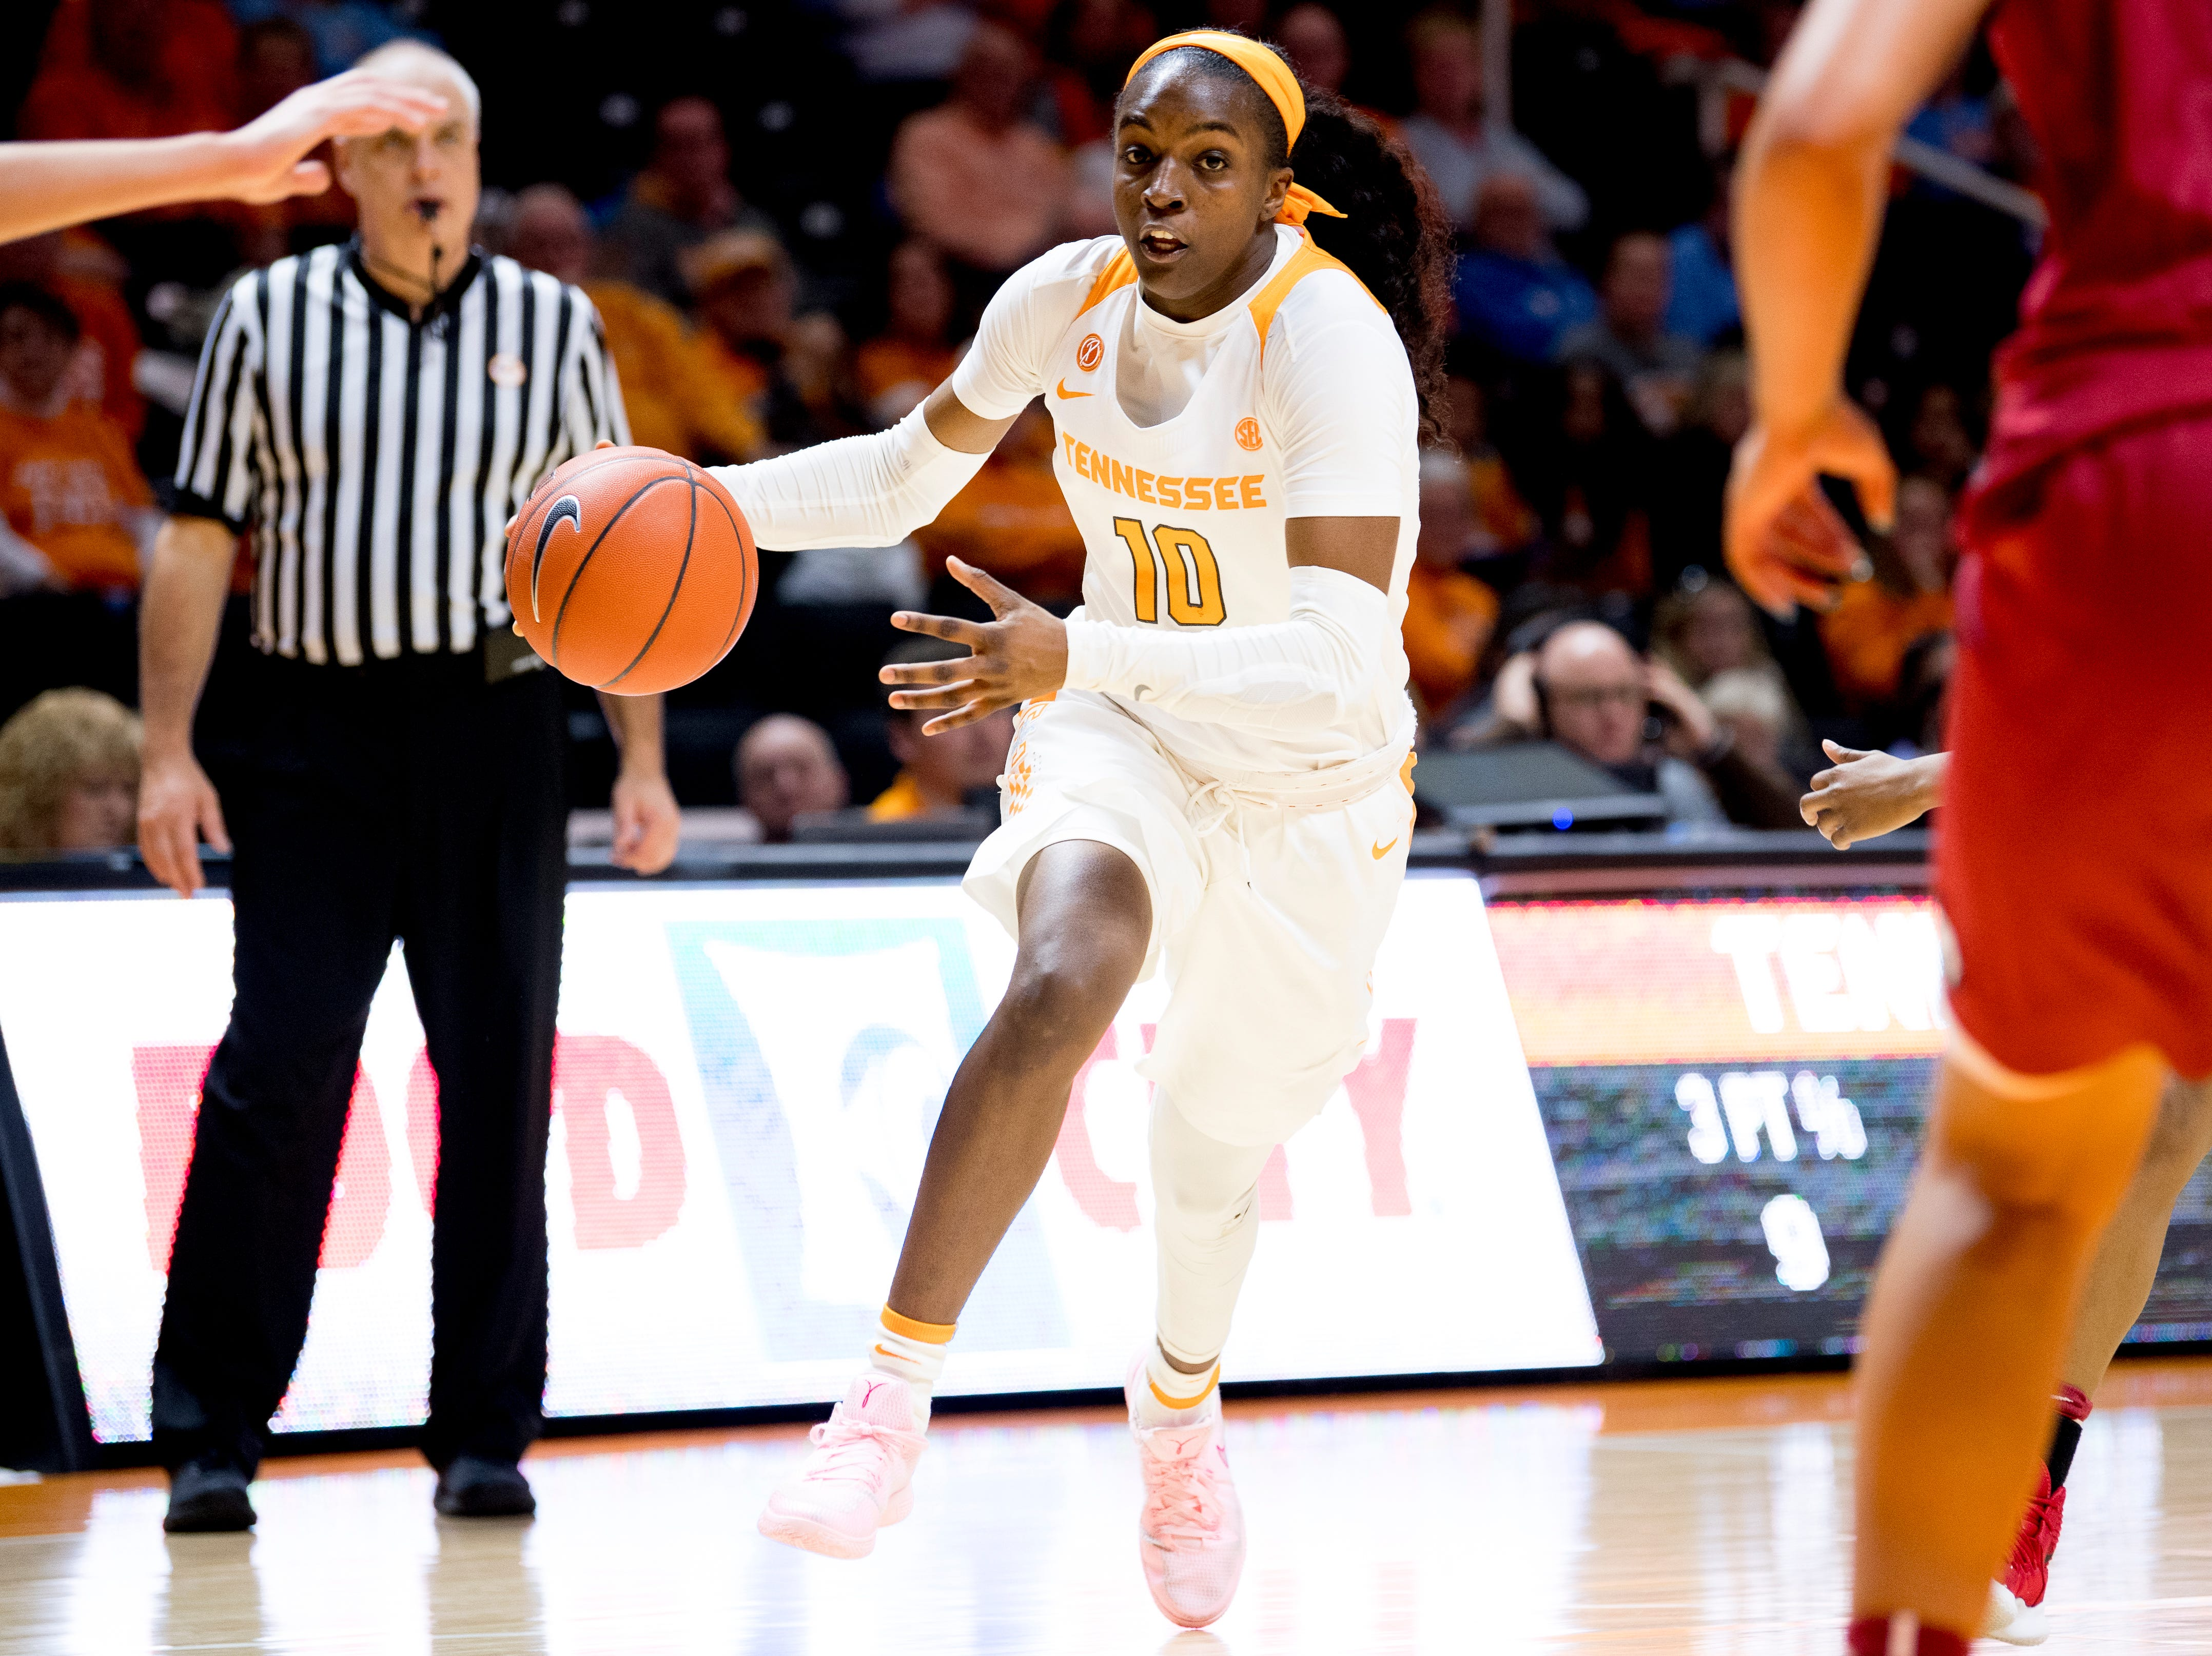 Tennessee guard/forward Meme Jackson (10) dribbles the ball shortly before injuring herself during a game between Tennessee and Arkansas at Thompson-Boling Arena in Knoxville, Tennessee on Monday, January 21, 2019.